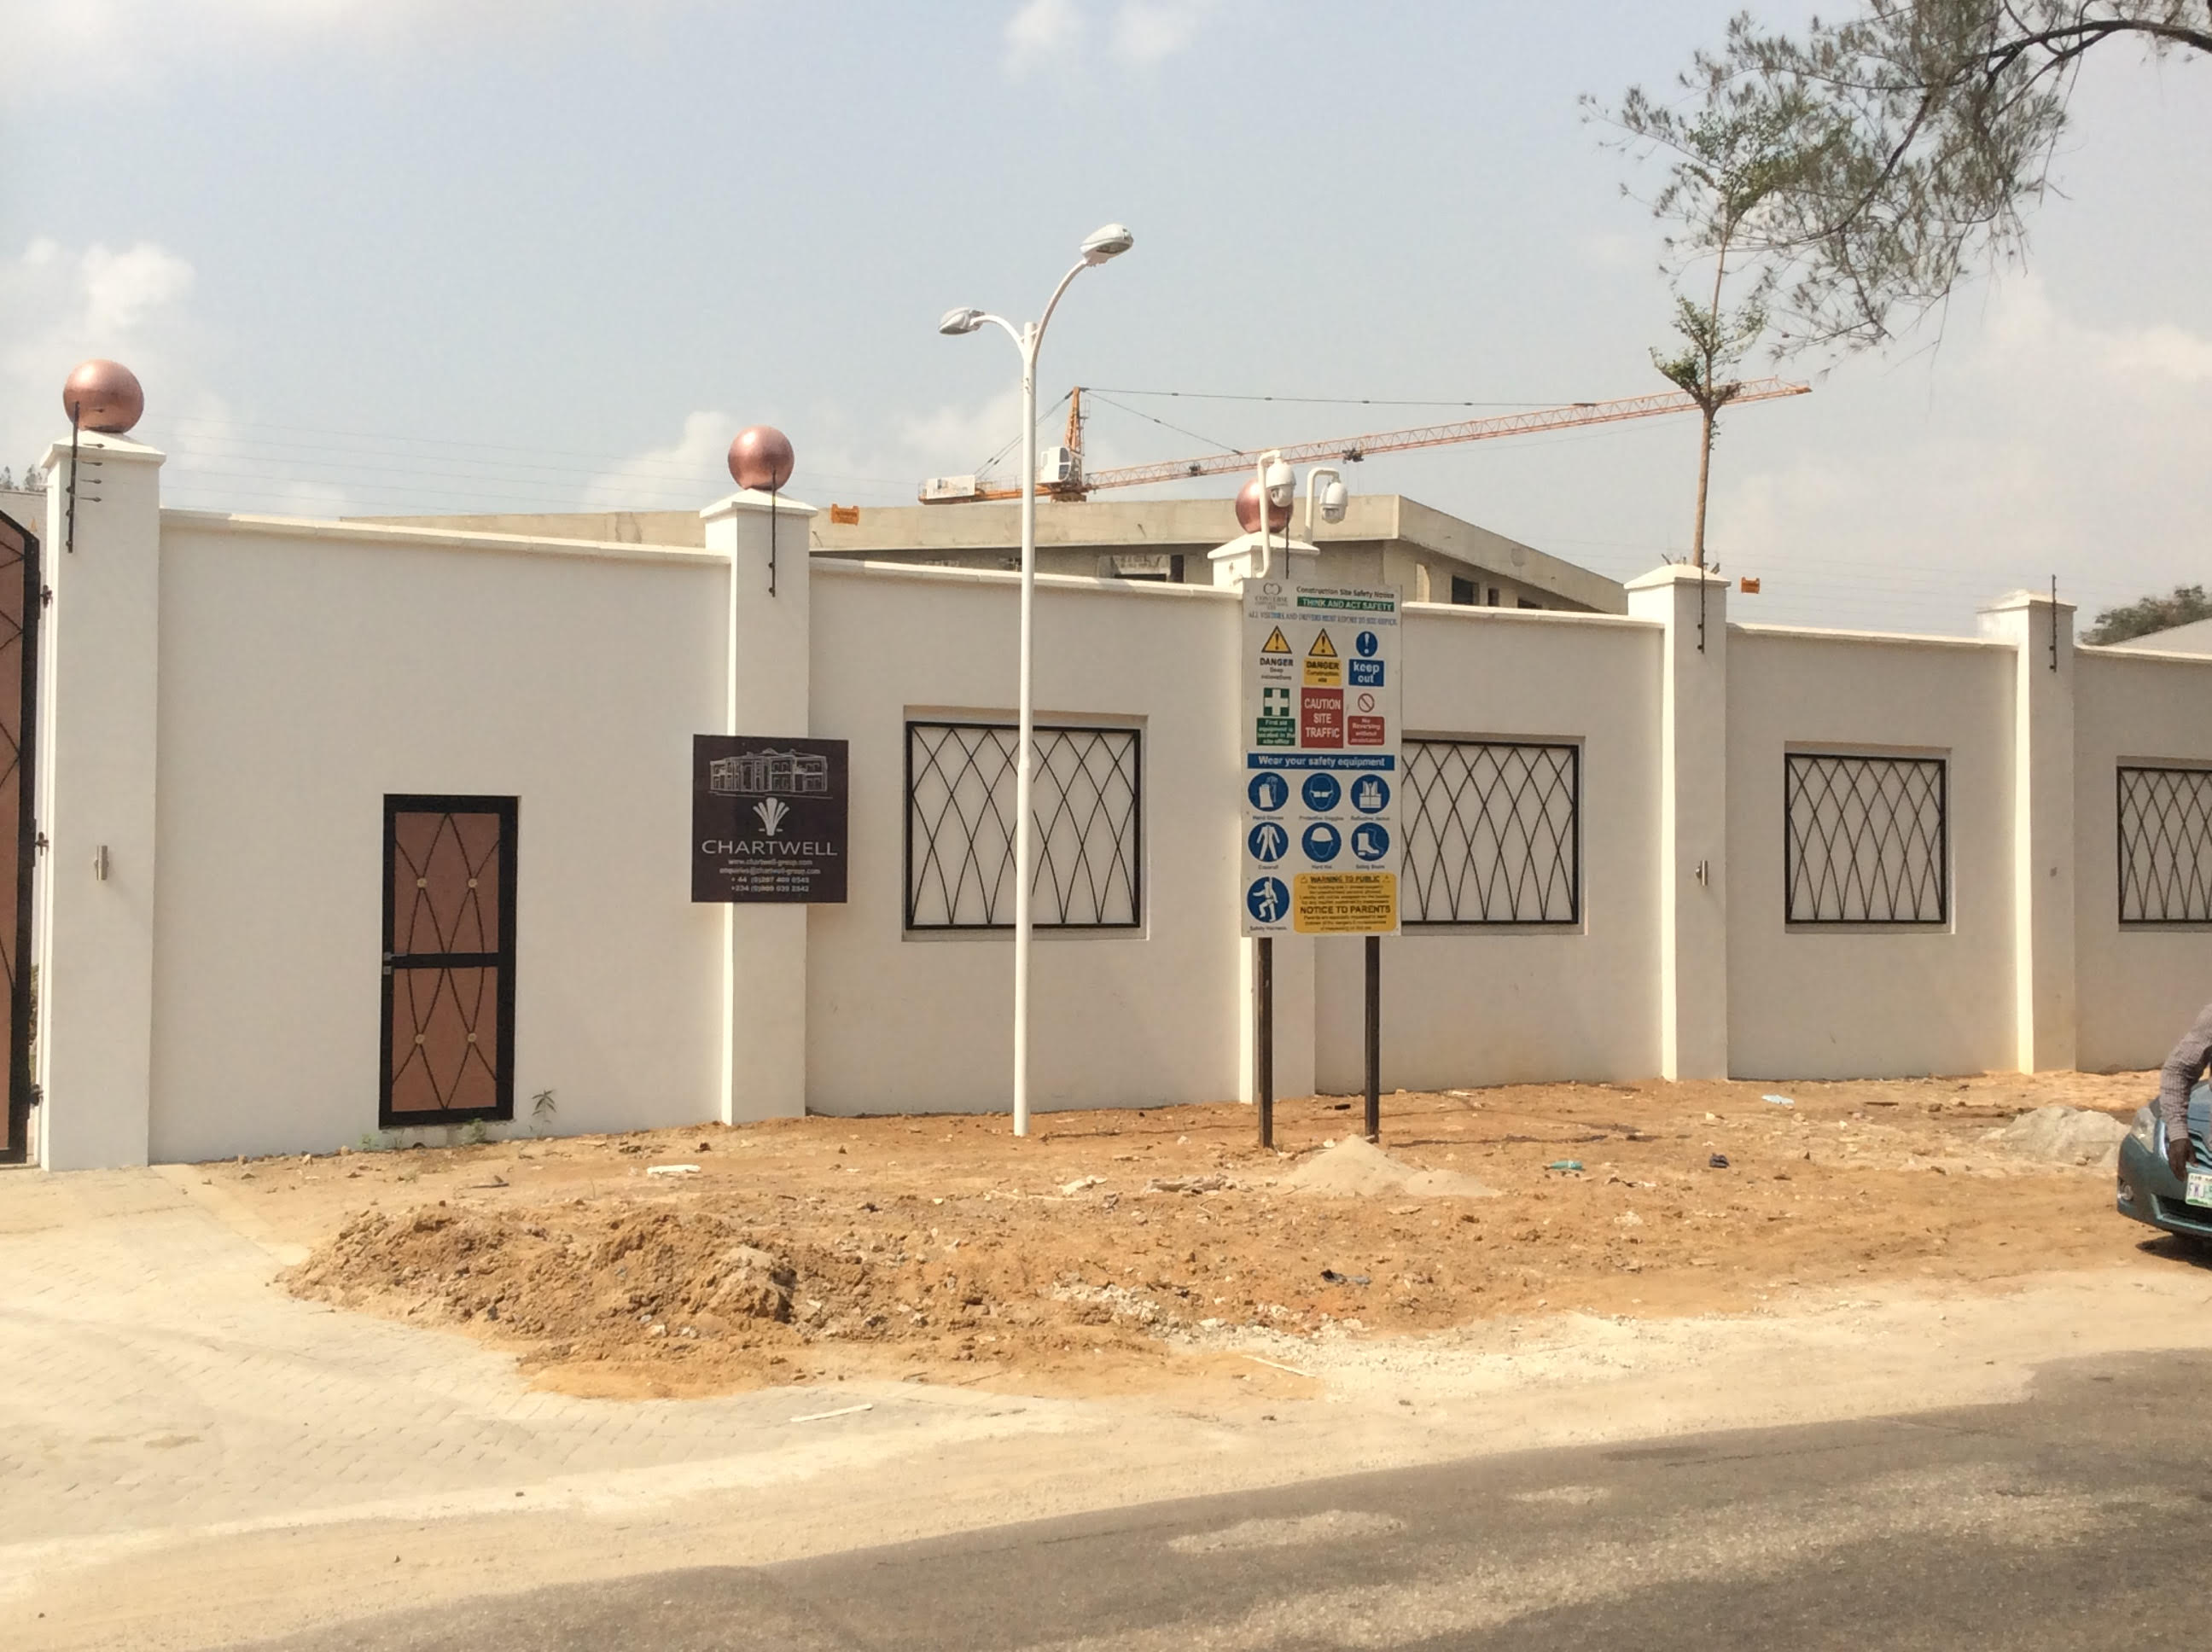 Electric fence agency in lagos nigeria